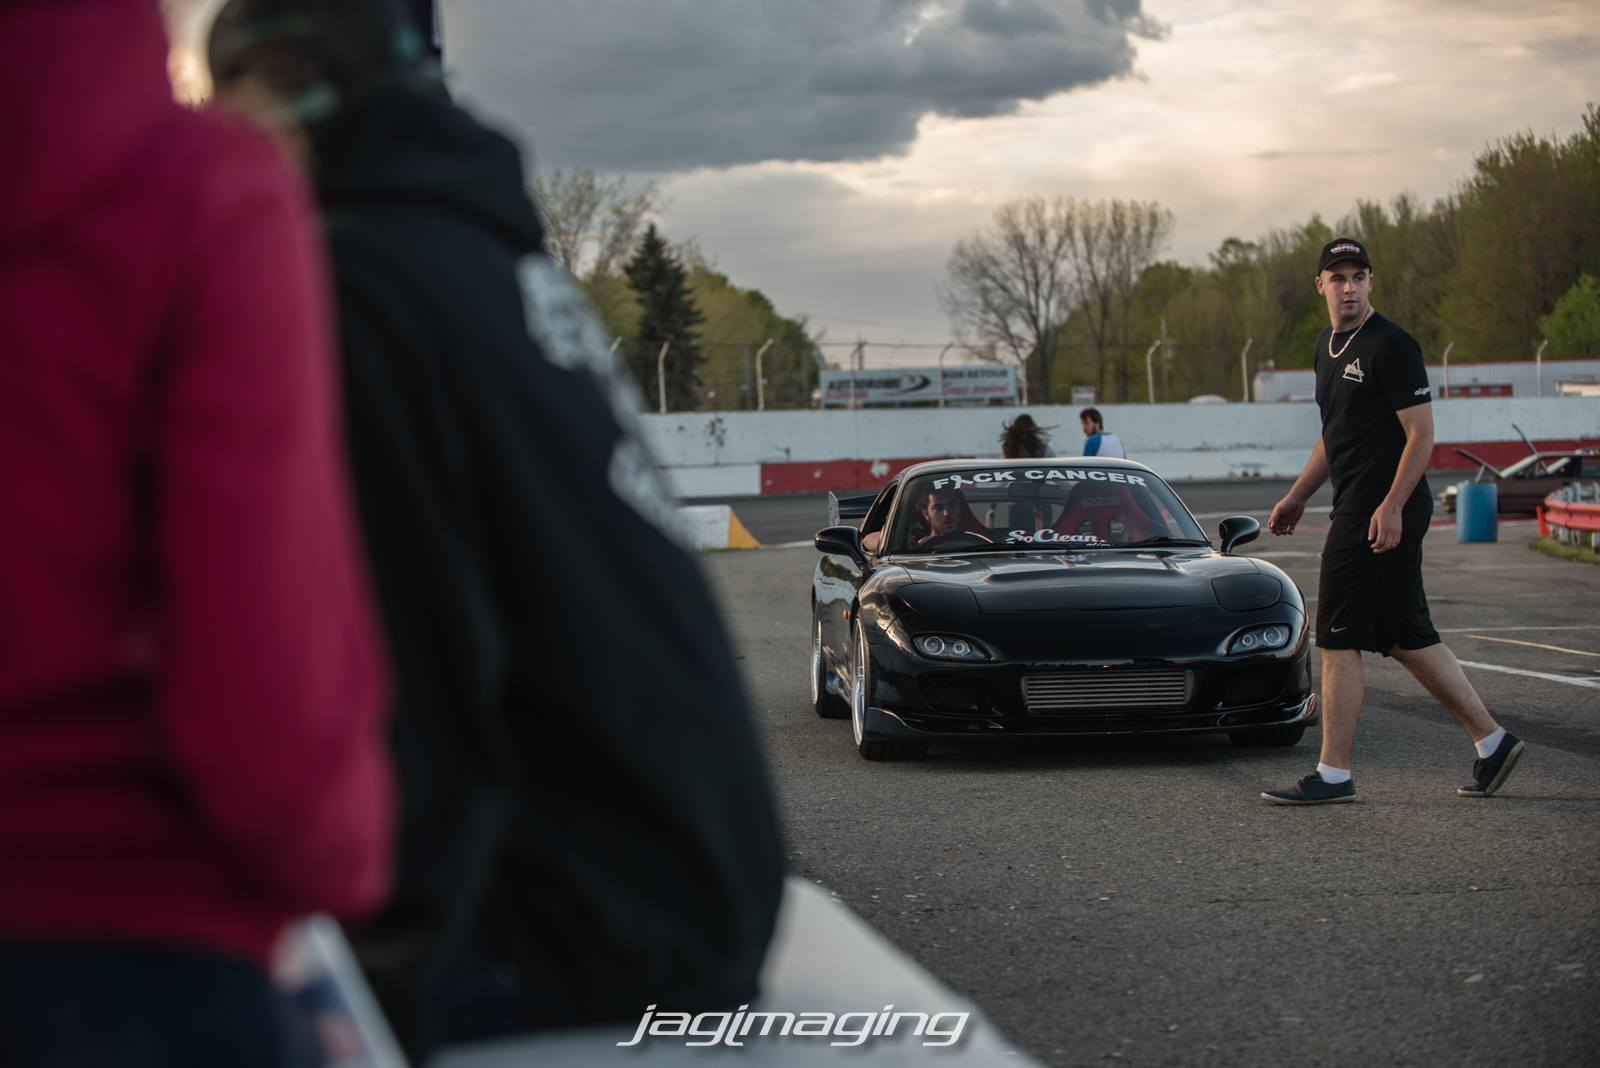 Always love the FD Rx7's